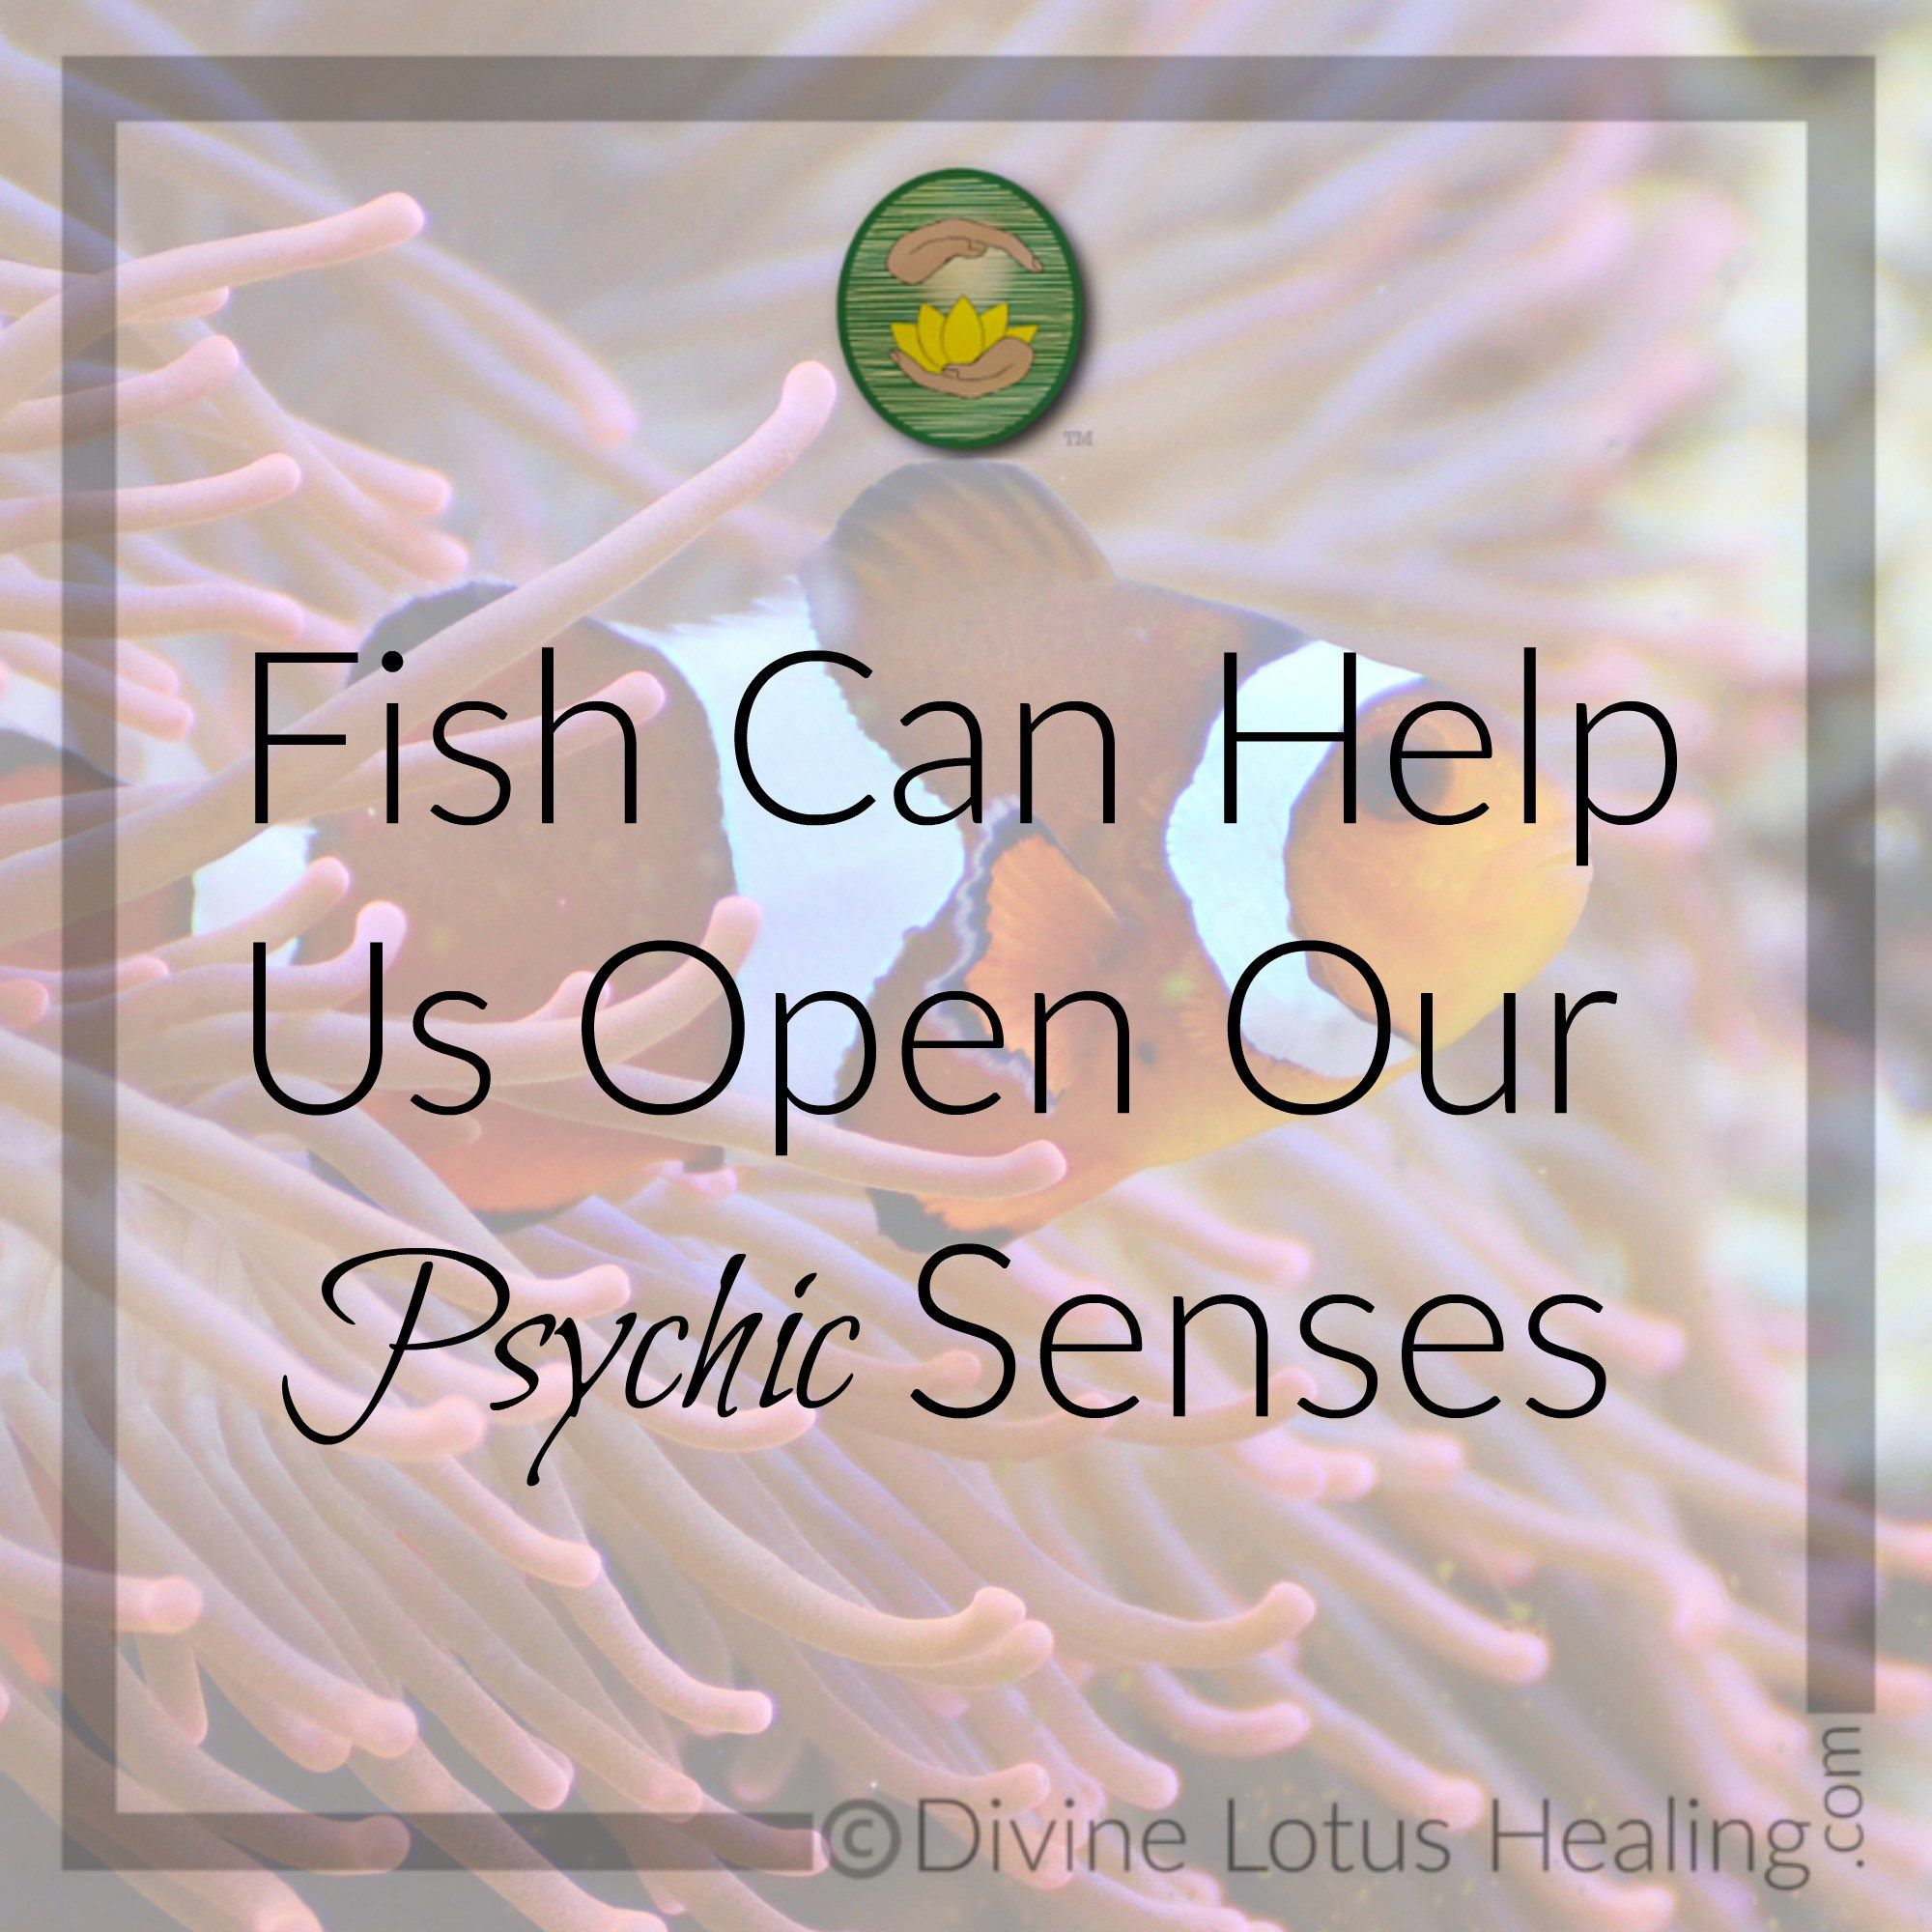 Fish Can Help Us Open Our Psychic Senses    As part of the psychic & spiritual development class I teach, one key lesson participants in the class continuously work on is trusting the messages that come through to